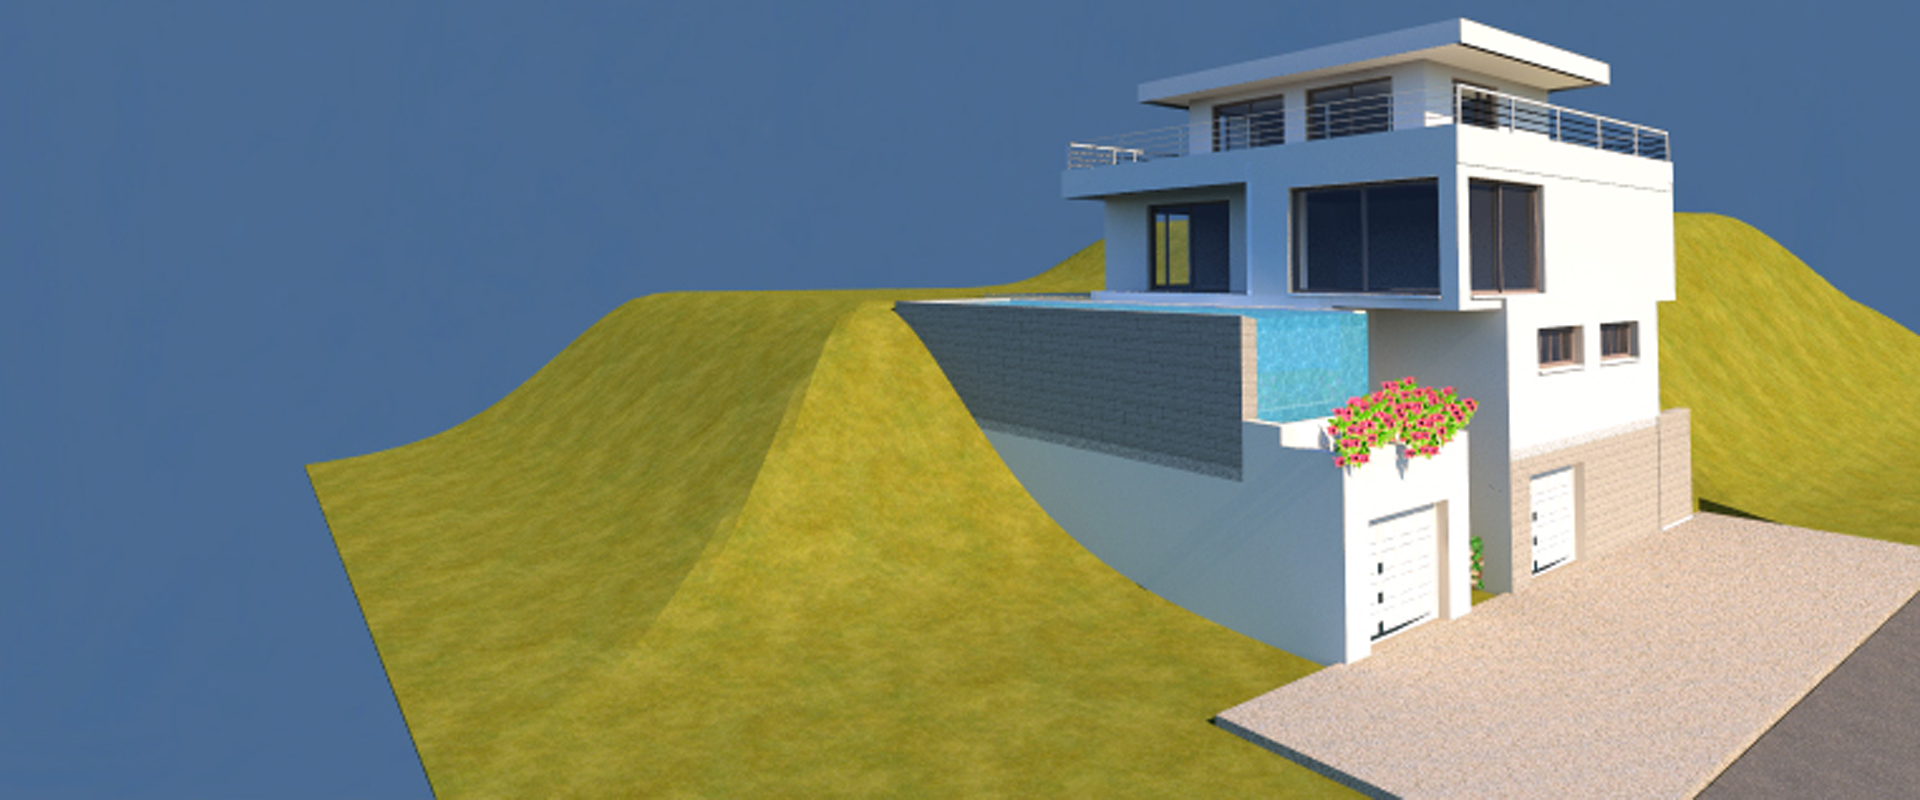 conception-plan-3d-maison-piscine-pays-basque-1